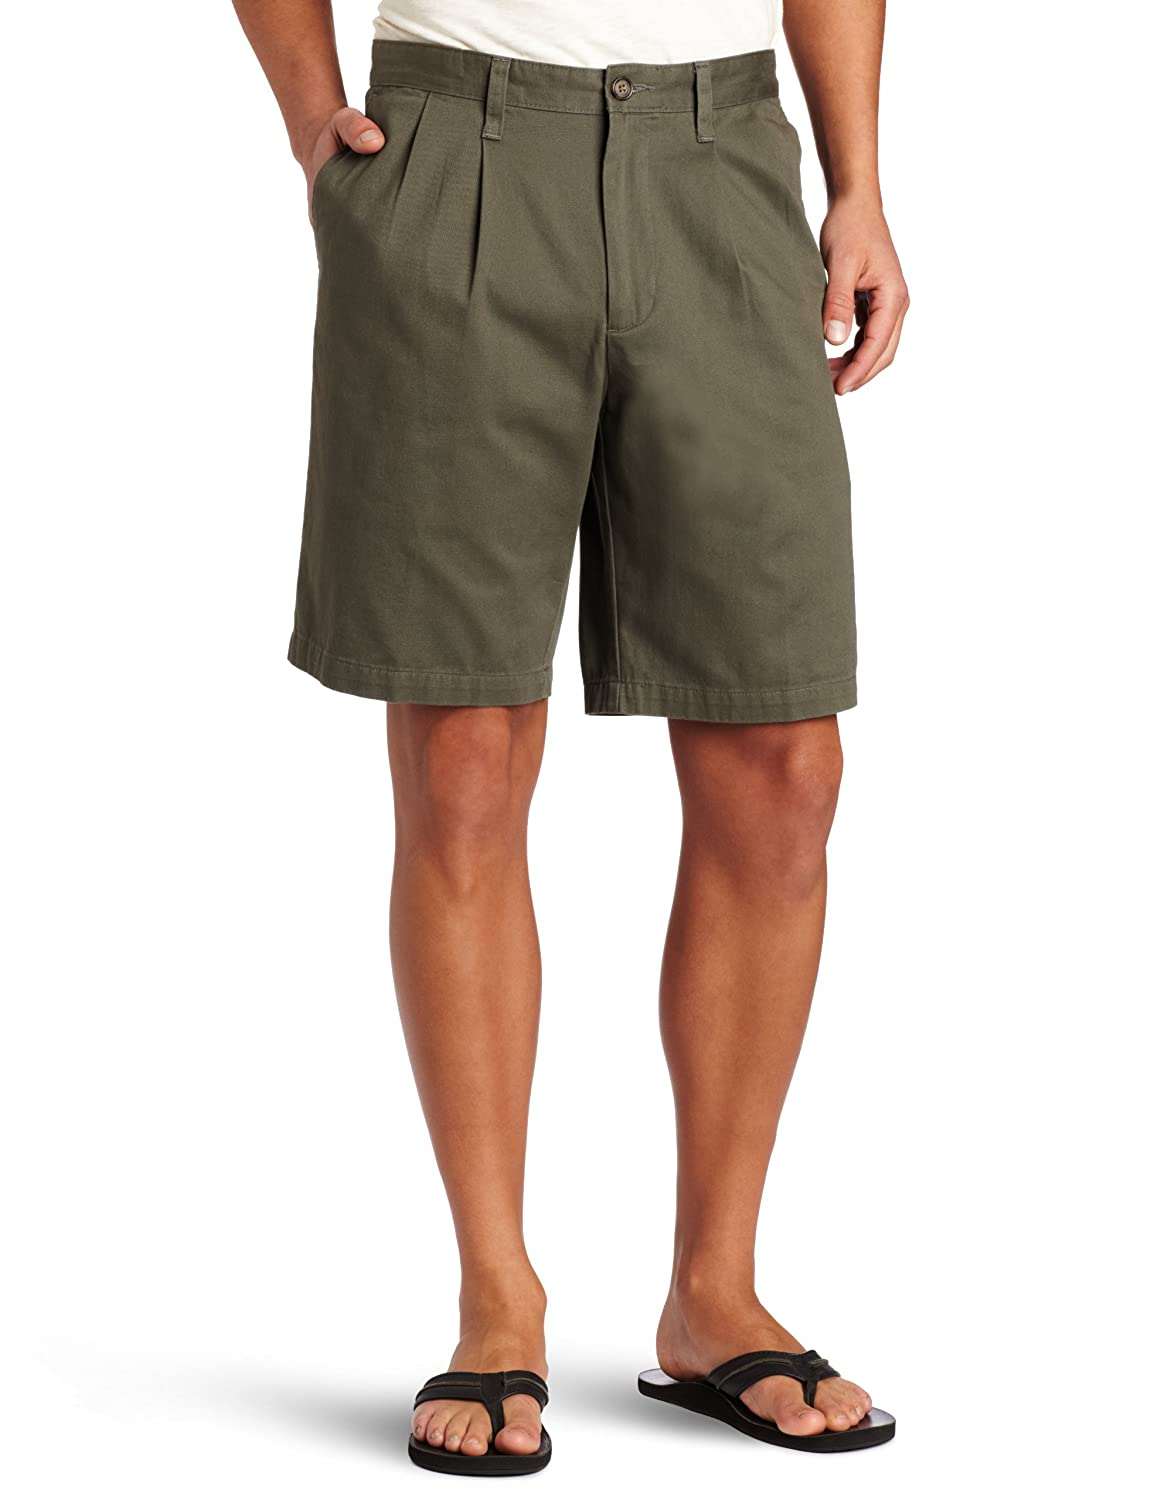 Mens Pleated Khaki Shorts